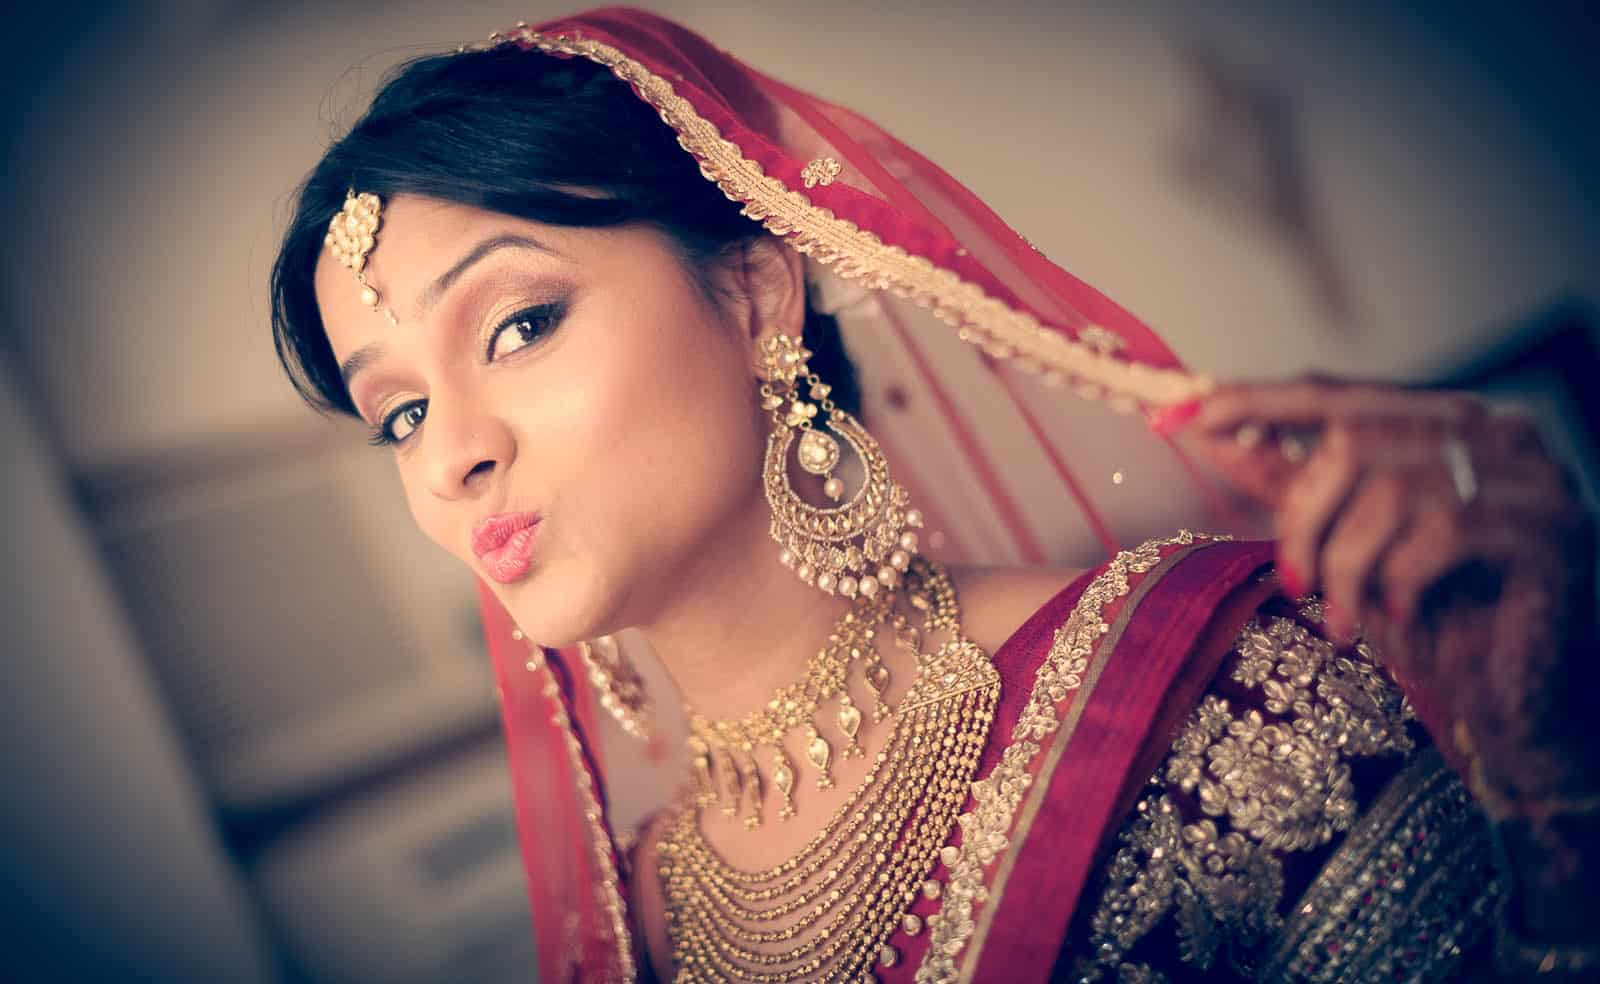 anoop-wedding-photographer-bride-getting-ready-kiss